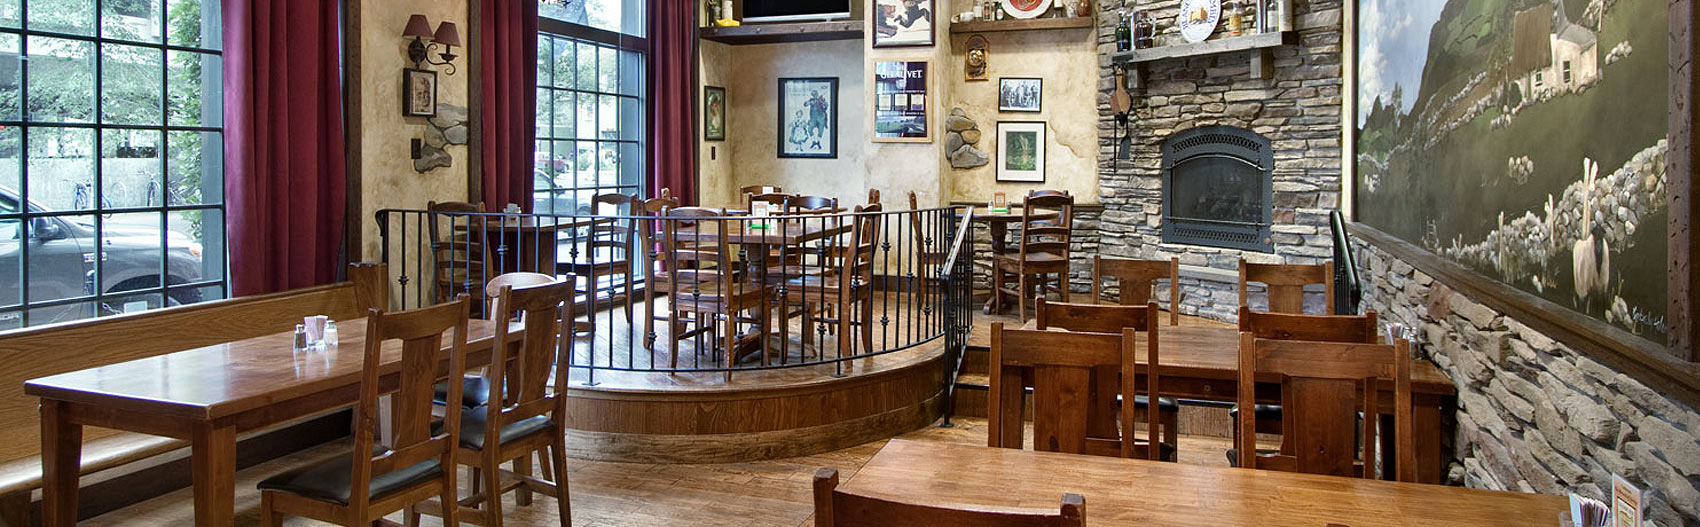 Kilpatrick's Irish Pub - Seating and stage area